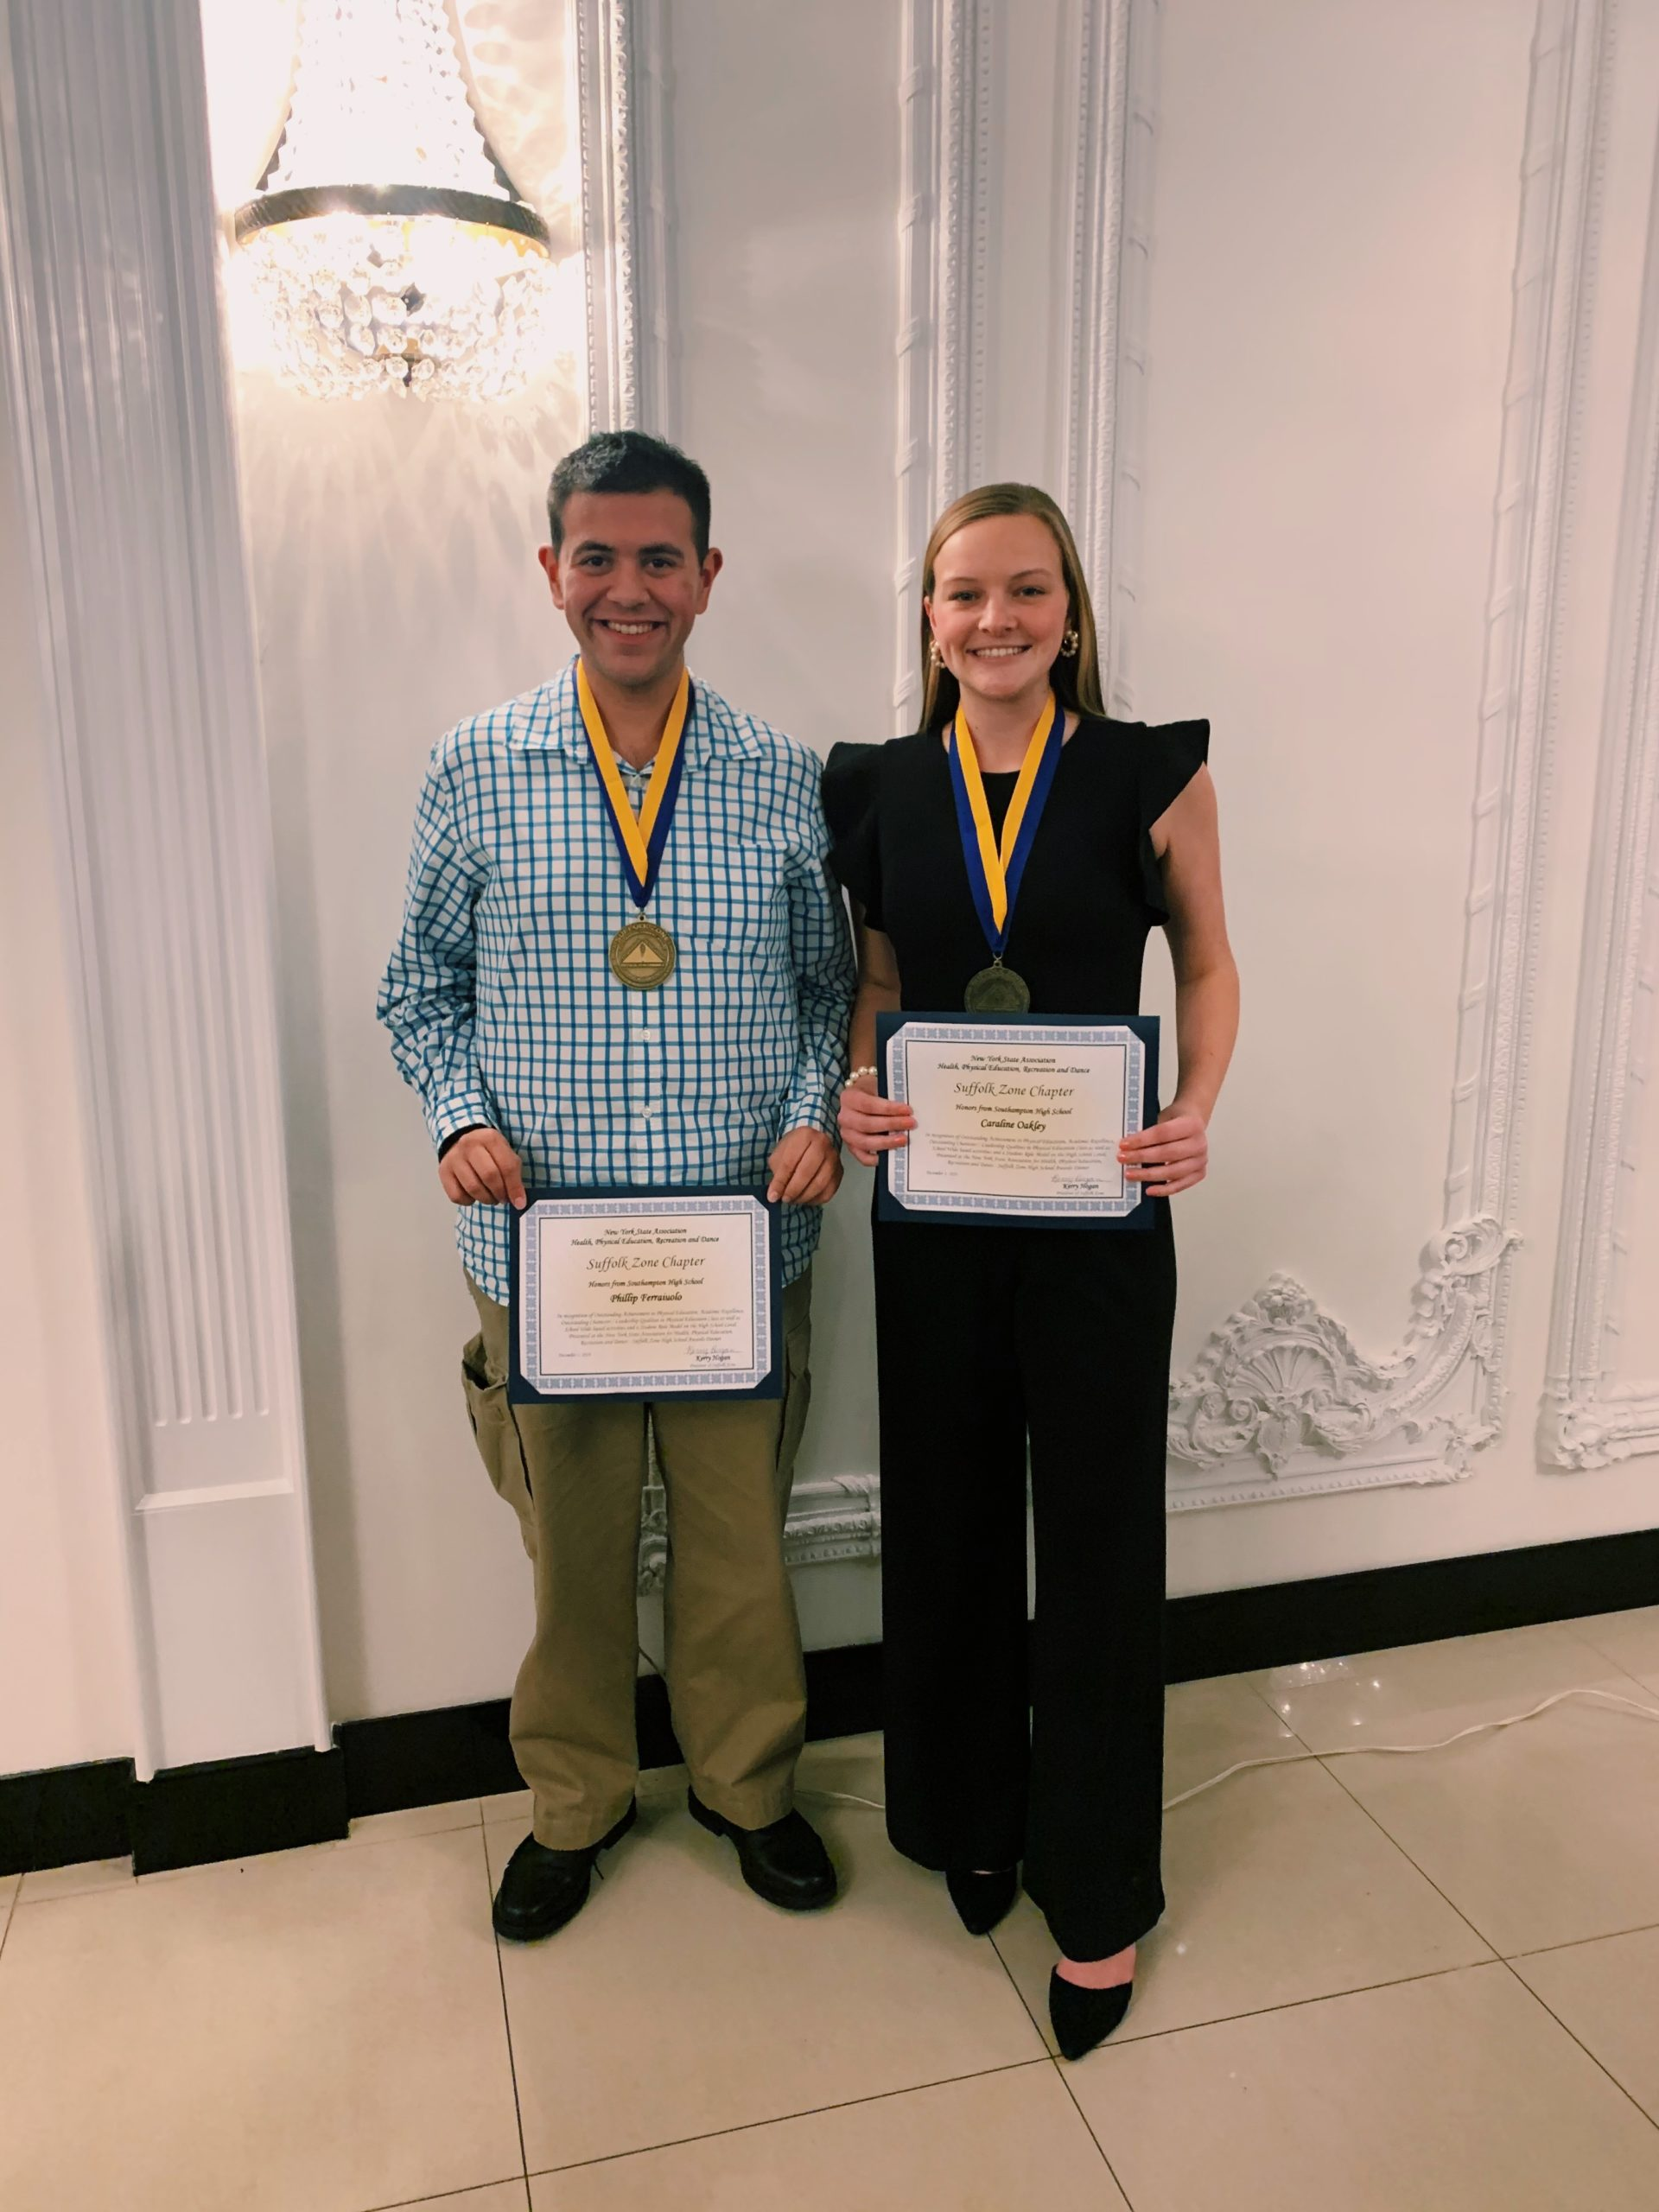 Southampton High School seniors Phillips Ferraiuolo and Caraline Oakley were honored by the New York State Association for Health, Physical Education, Recreation and Dance on December 3 as winners of the Suffolk Zone Student Leadership Award. The pair were selected based upon their excellence in physical education, leadership ability and service to the community.